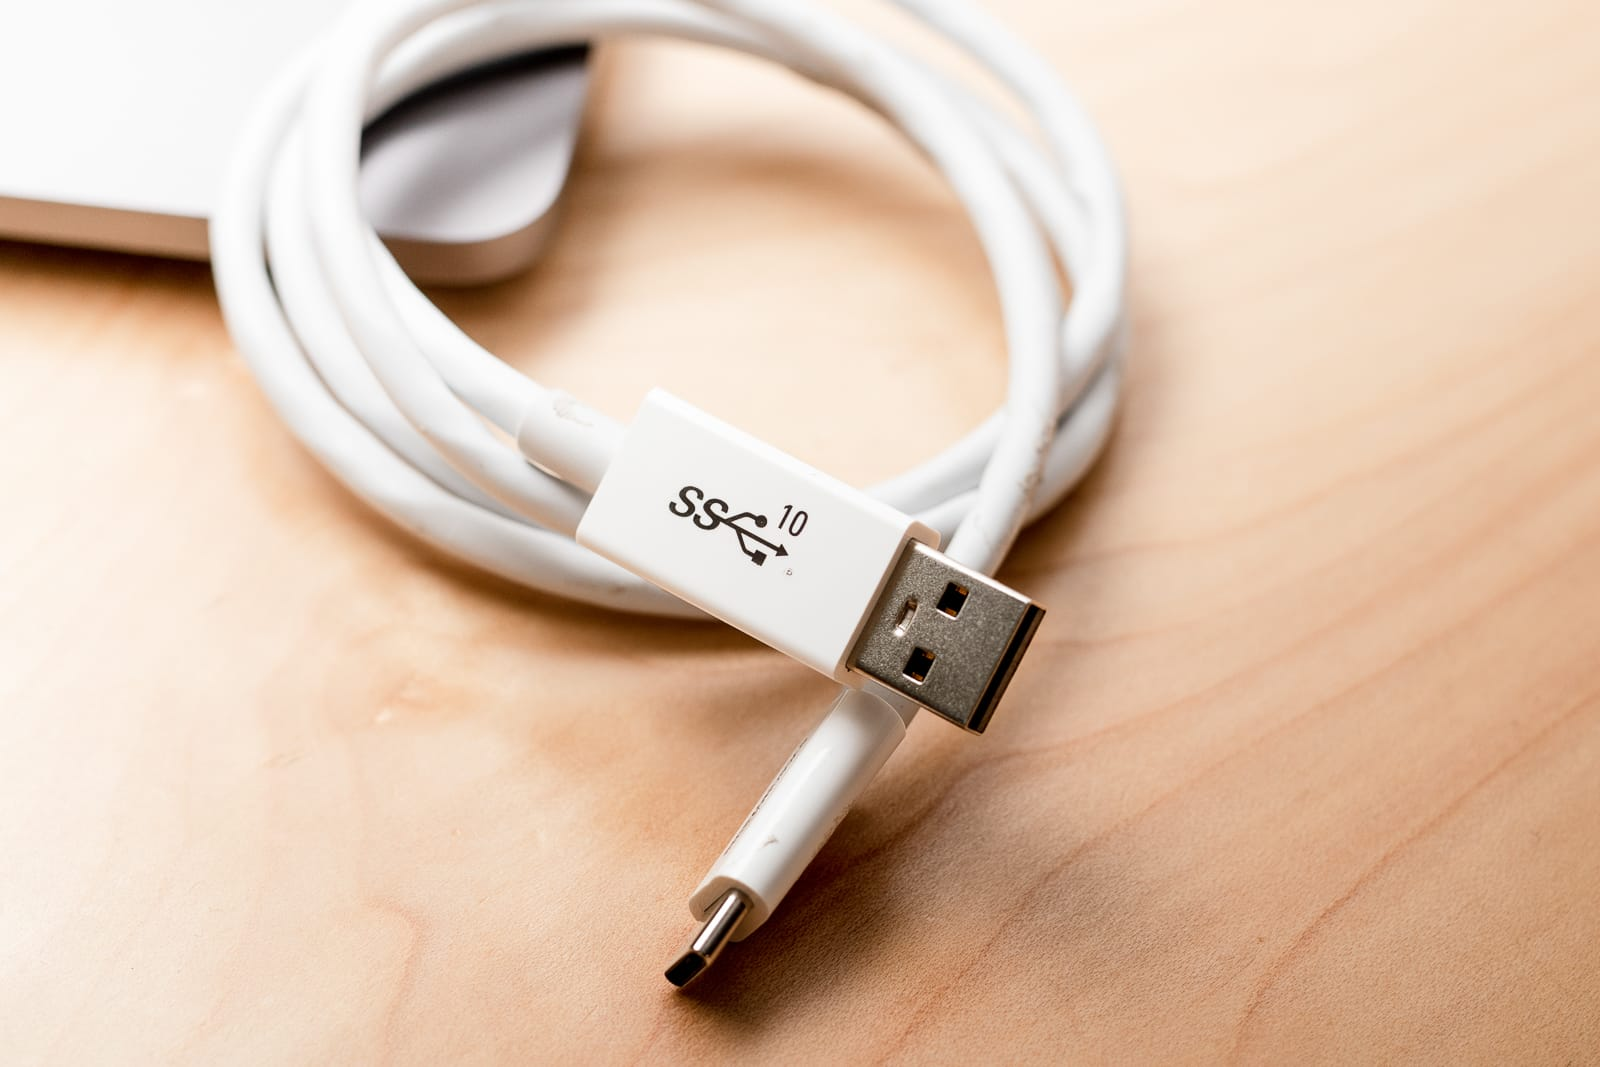 USB-cables and adapters